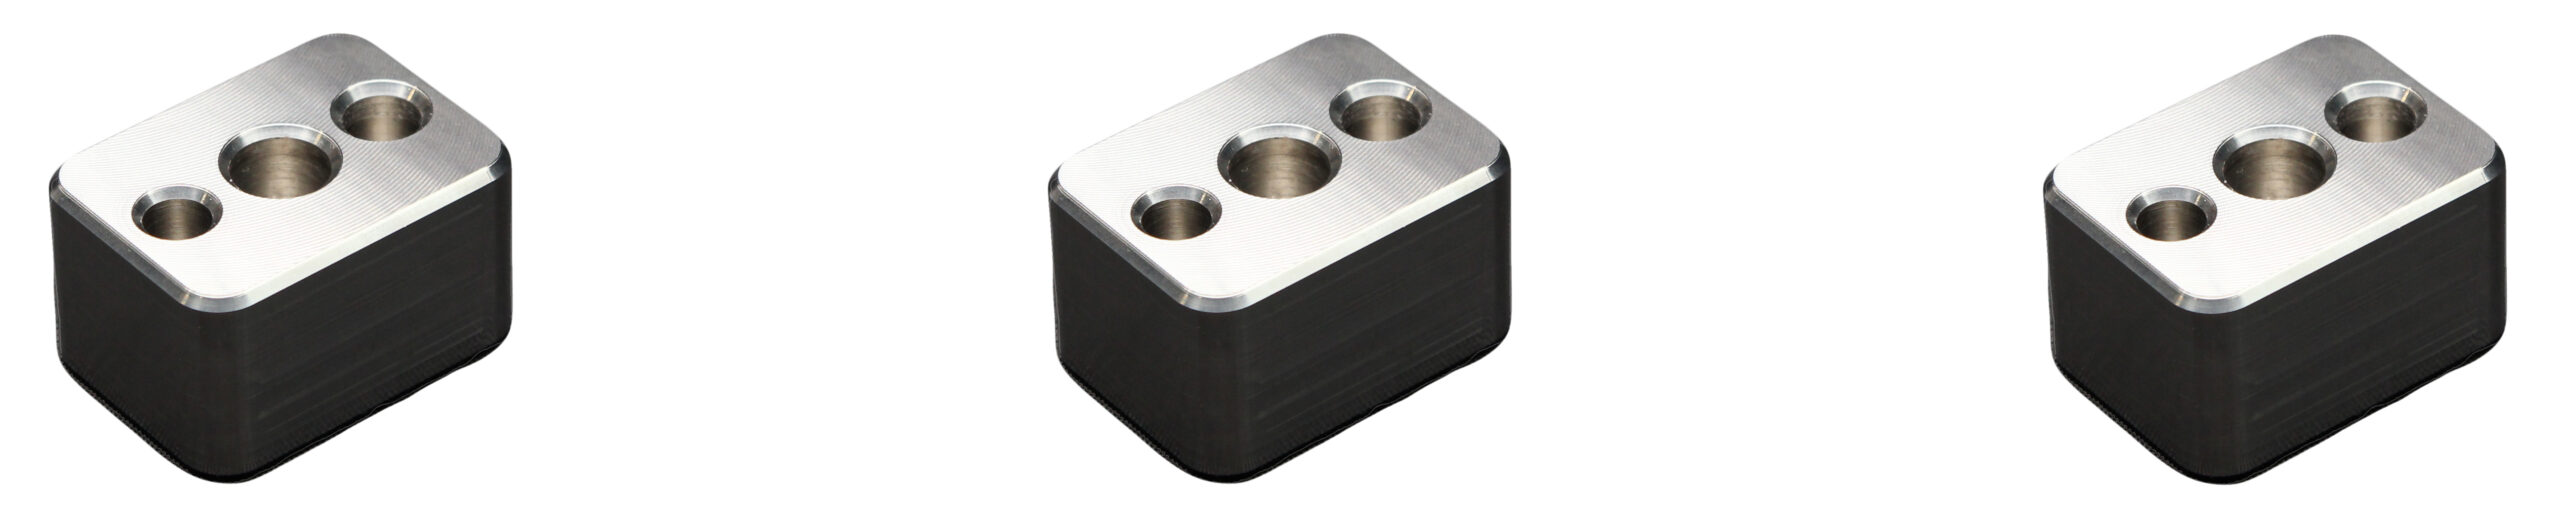 NEW PRODUCT - MACHINED PEN HOLDER